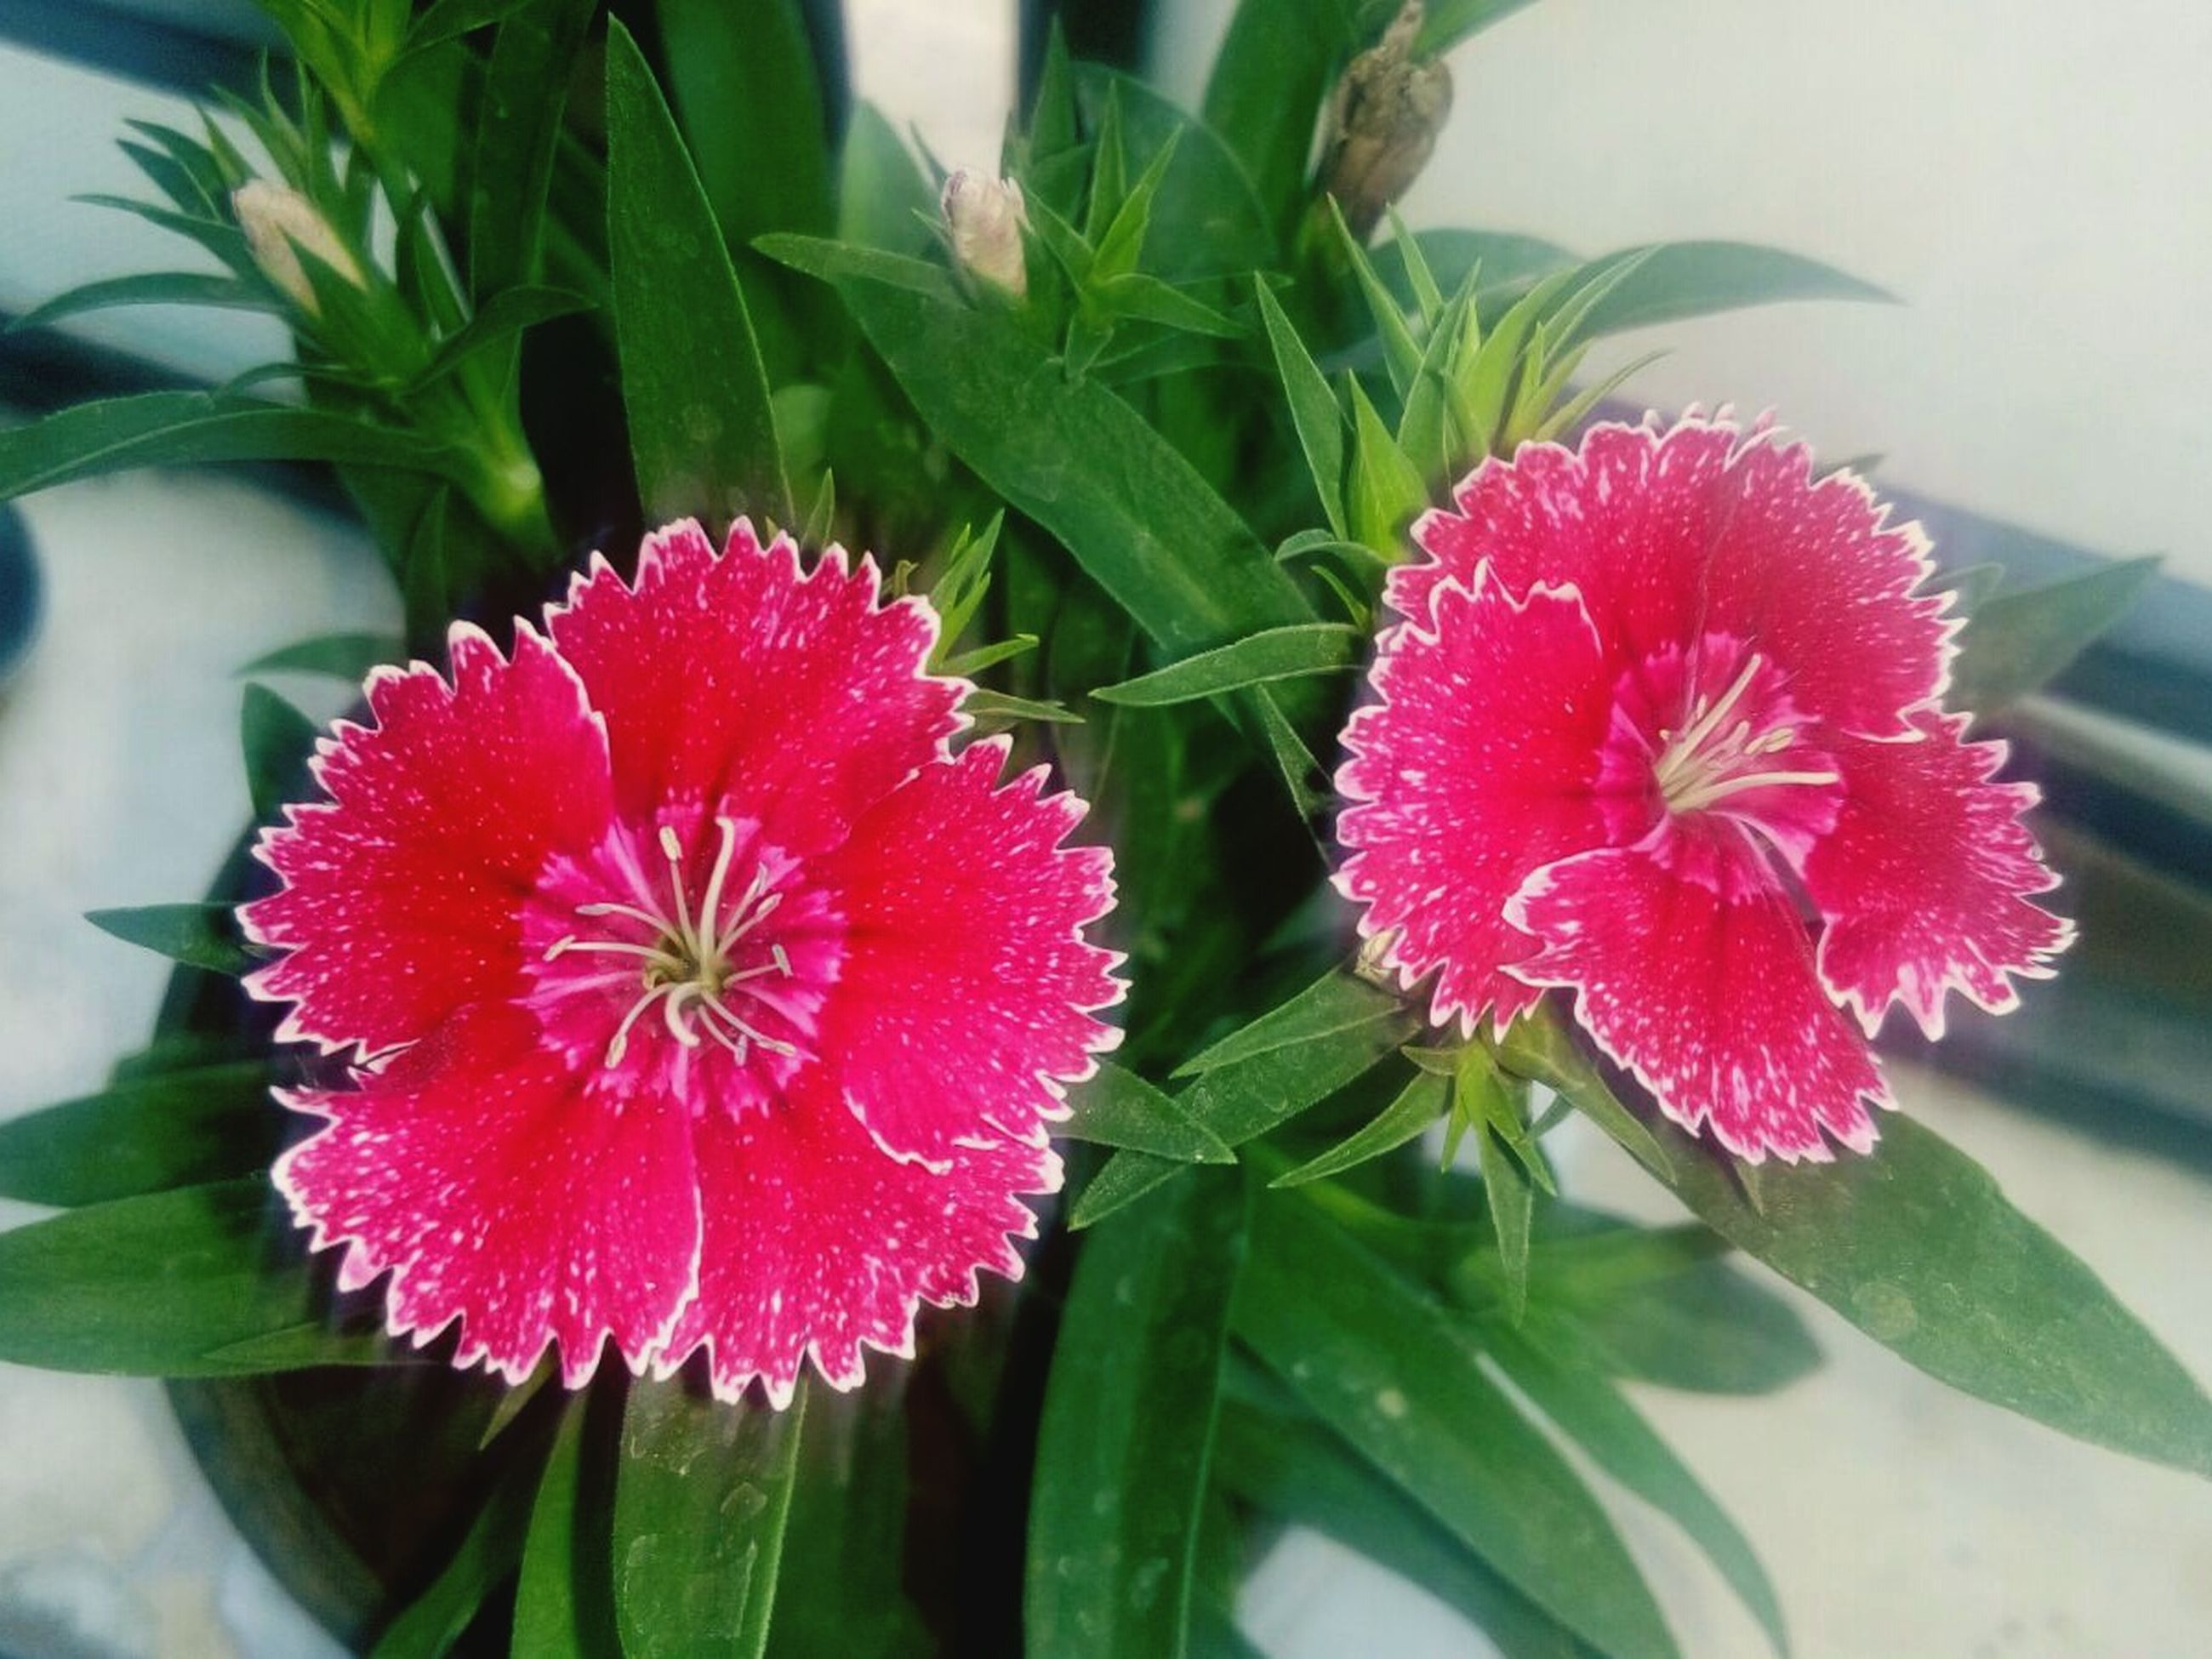 flower, freshness, red, petal, growth, fragility, close-up, flower head, plant, beauty in nature, pink color, focus on foreground, nature, leaf, blooming, potted plant, high angle view, green color, no people, indoors